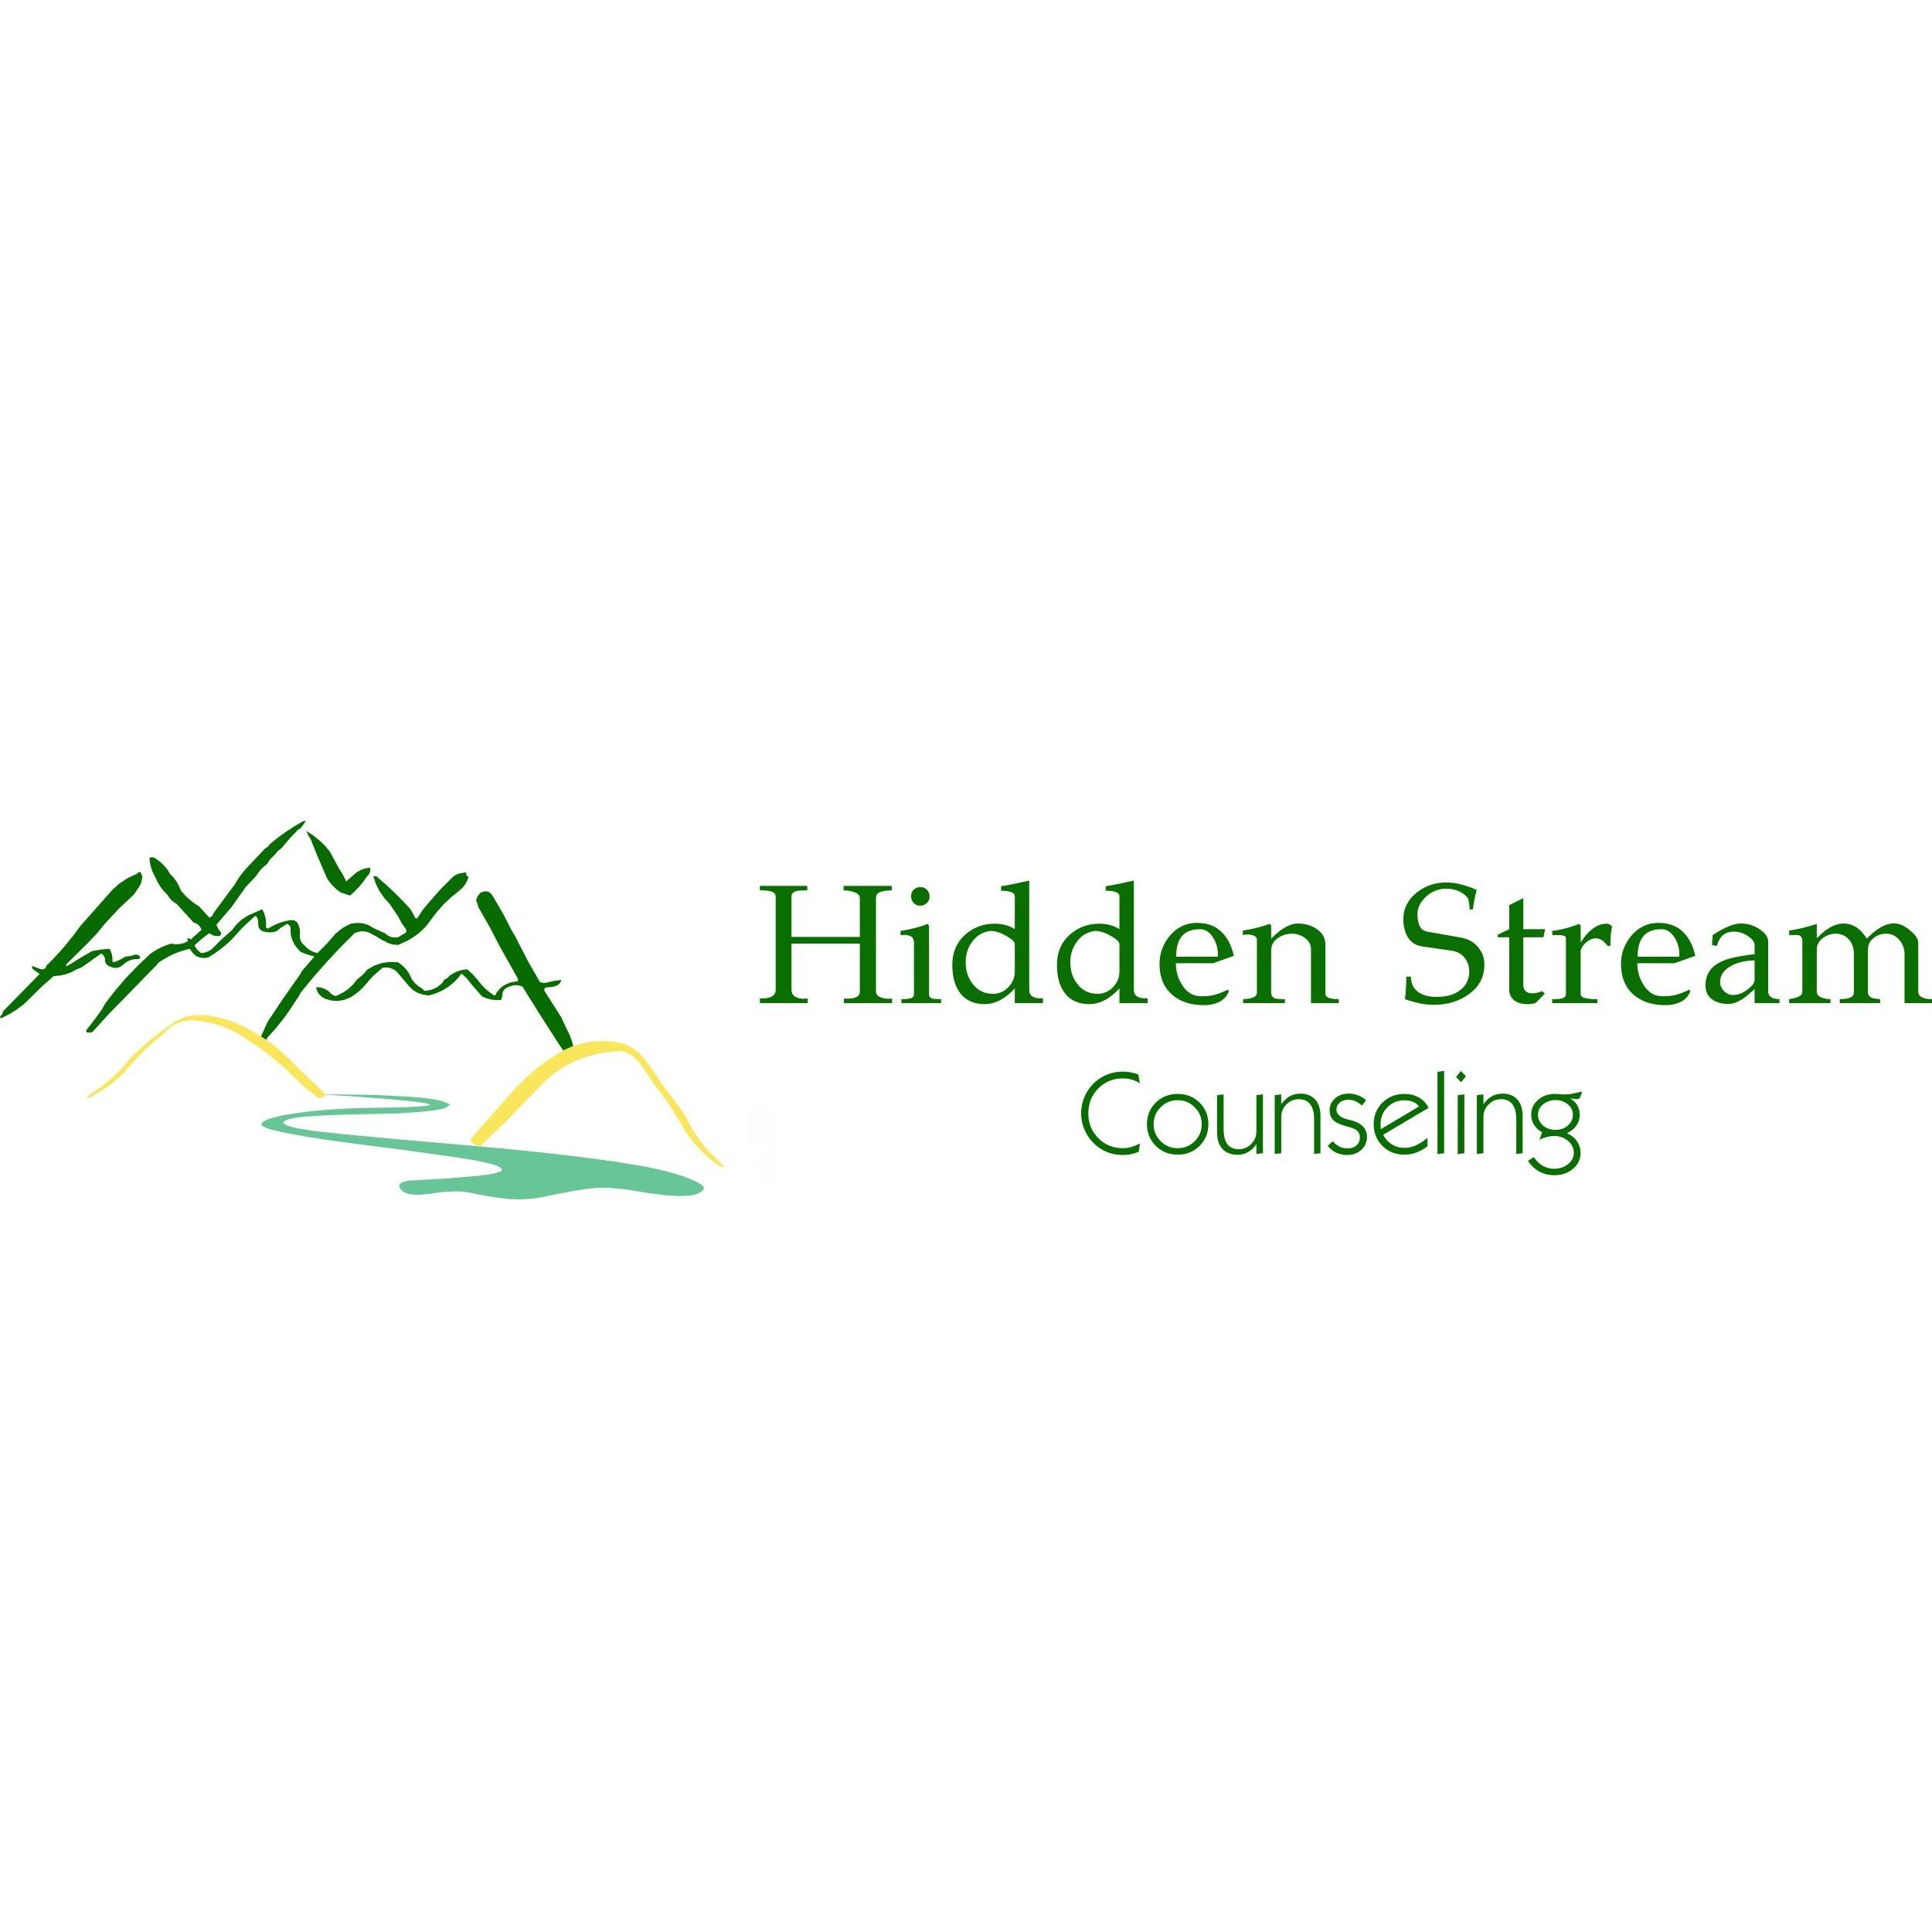 Hidden Stream Counseling - Raleigh, NC 27605 - (919)307-3805 | ShowMeLocal.com